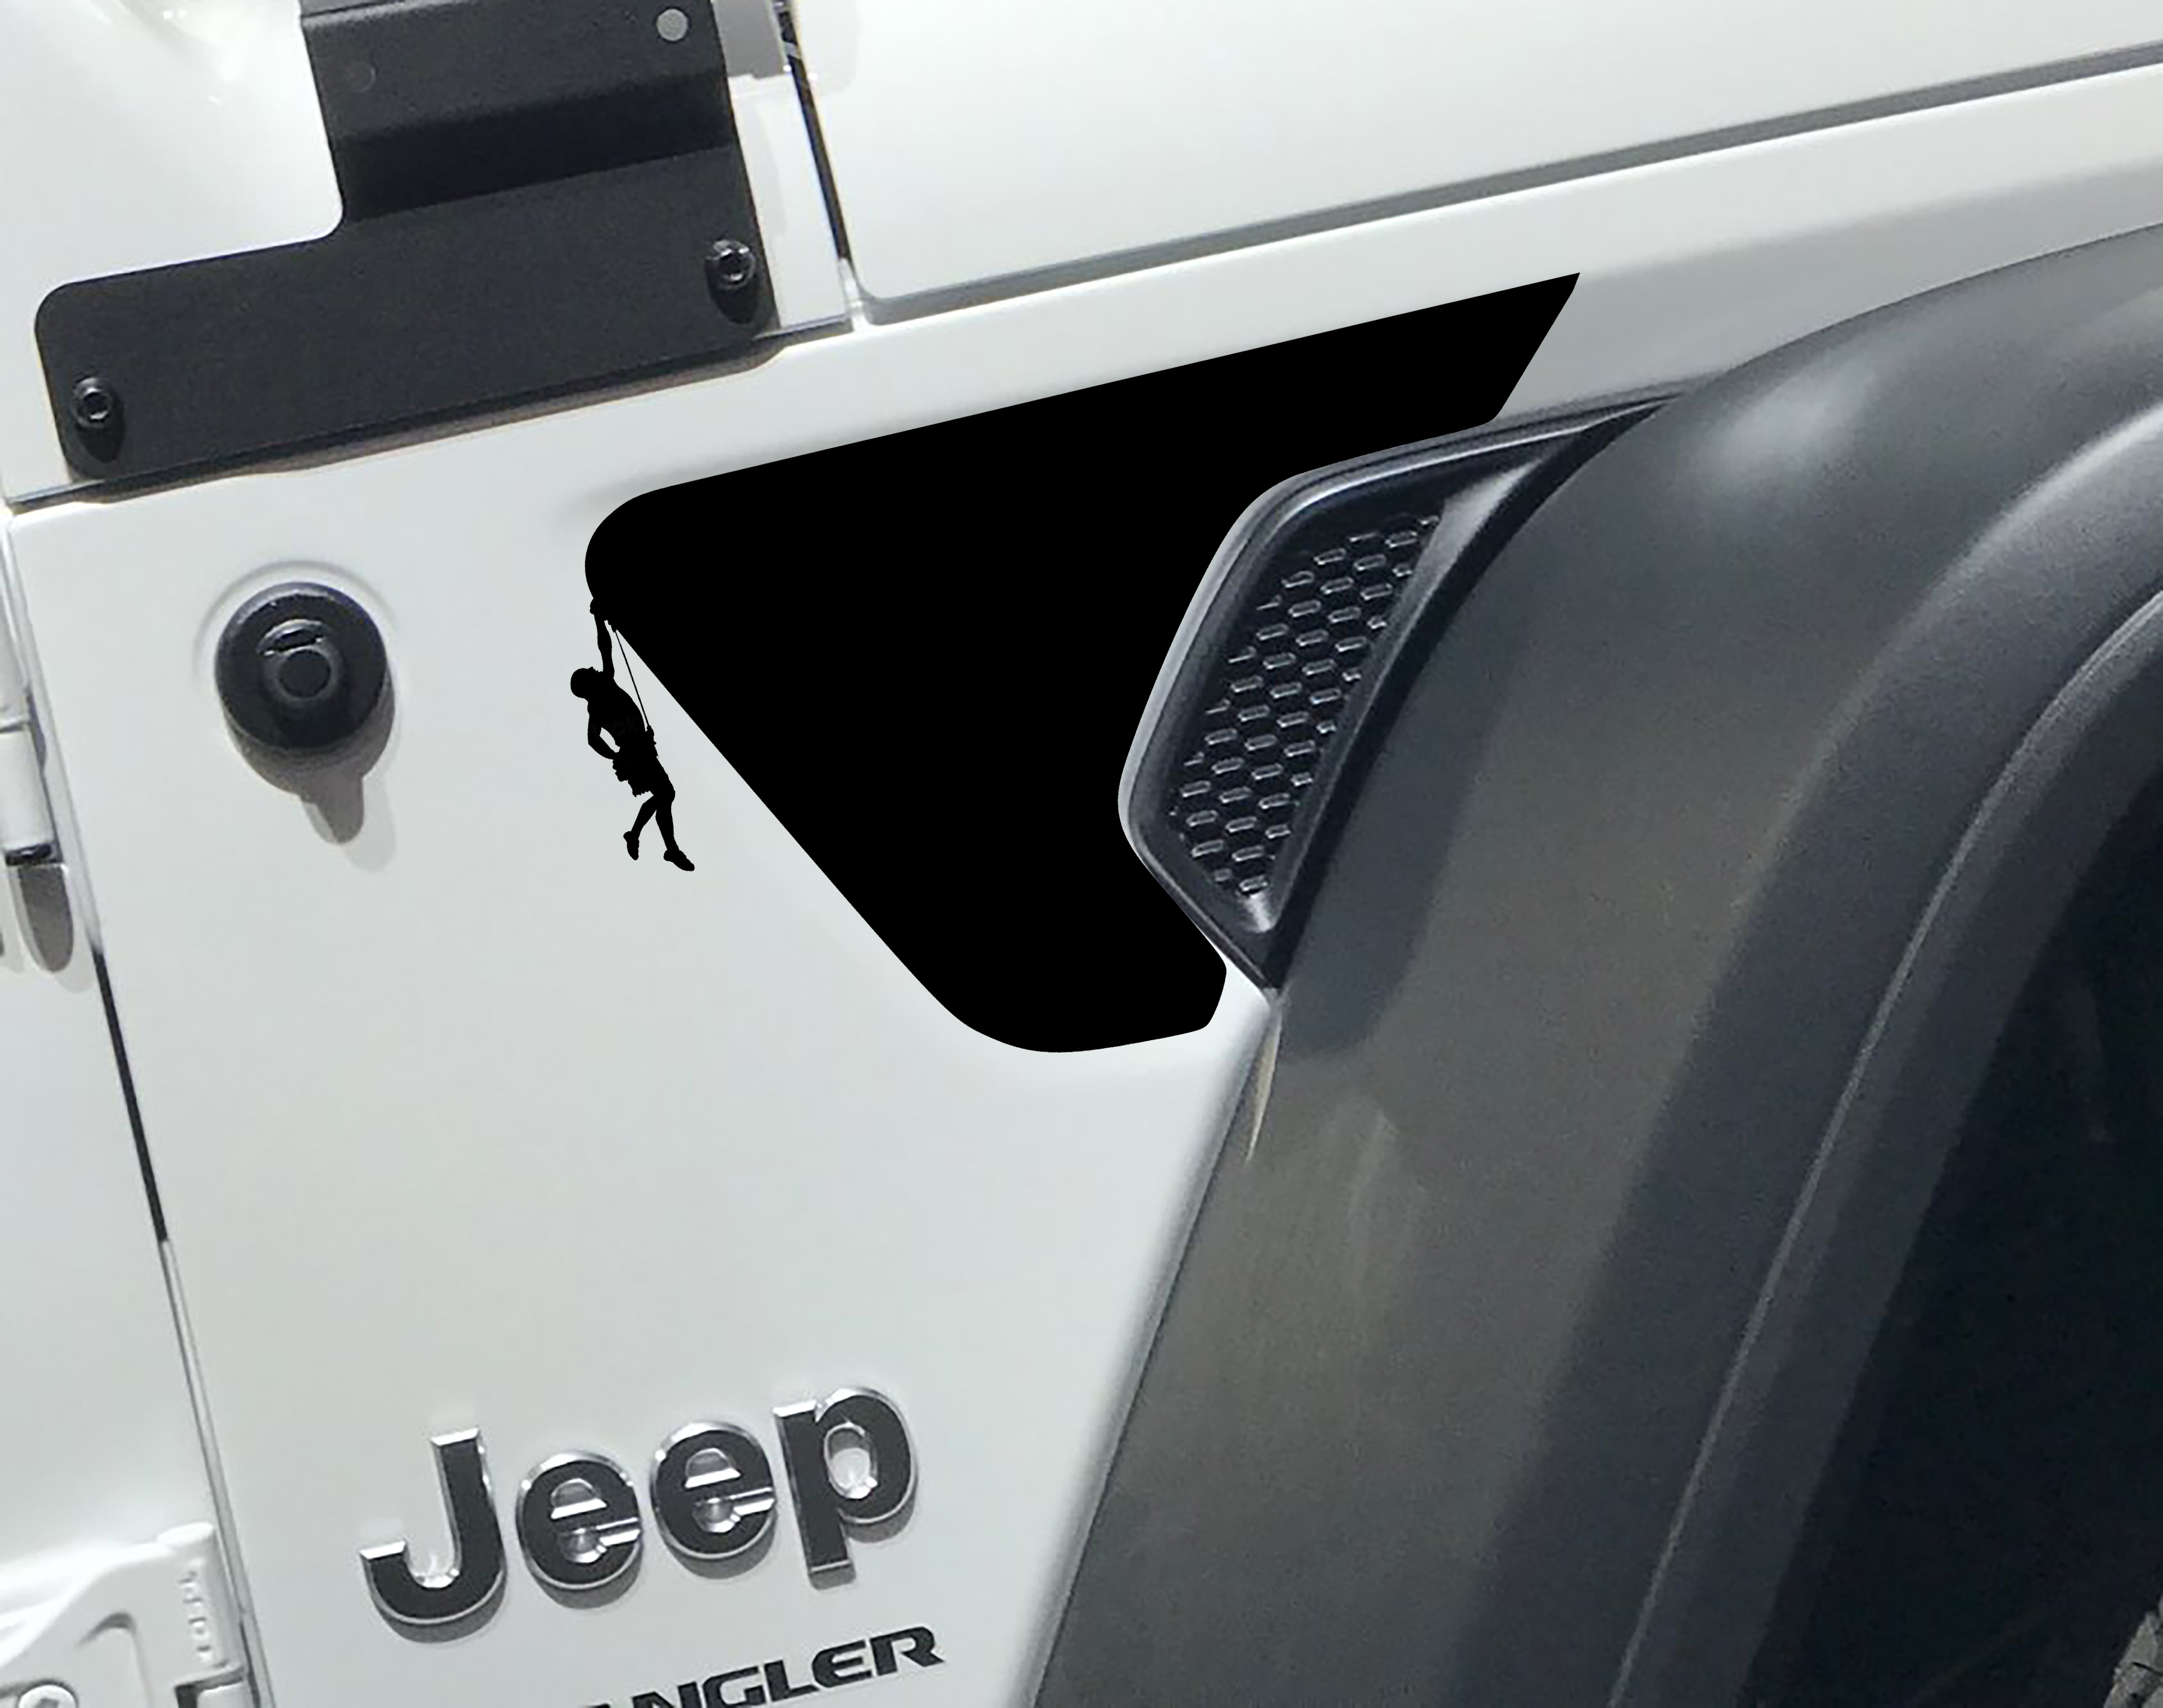 Jeep Wrangler JL Male Rock Climber Front Fender Vent Accent 2pc Vinyl Decal Graphic